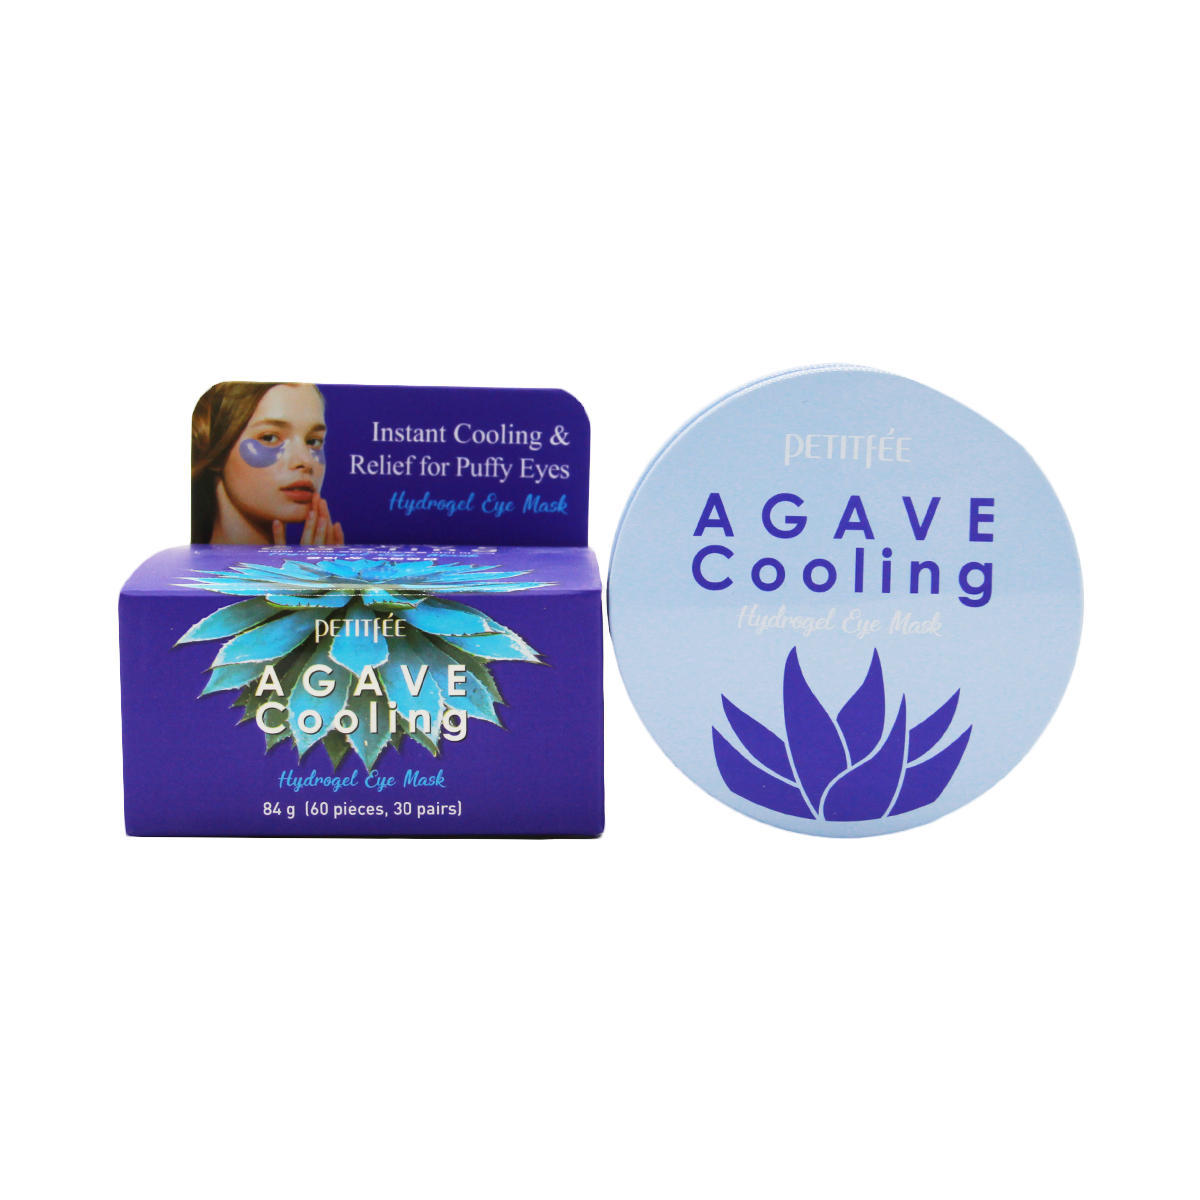 Скидки Гидрогелевые Патчи для глаз с Агавой, PETITFEE , Agave Cooling Hydrogel Eye Patch, 60 шт import_files_2b_2b37588c5b1d11e980fb3408042974b1_2b37588d5b1d11e980fb3408042974b1.jpg